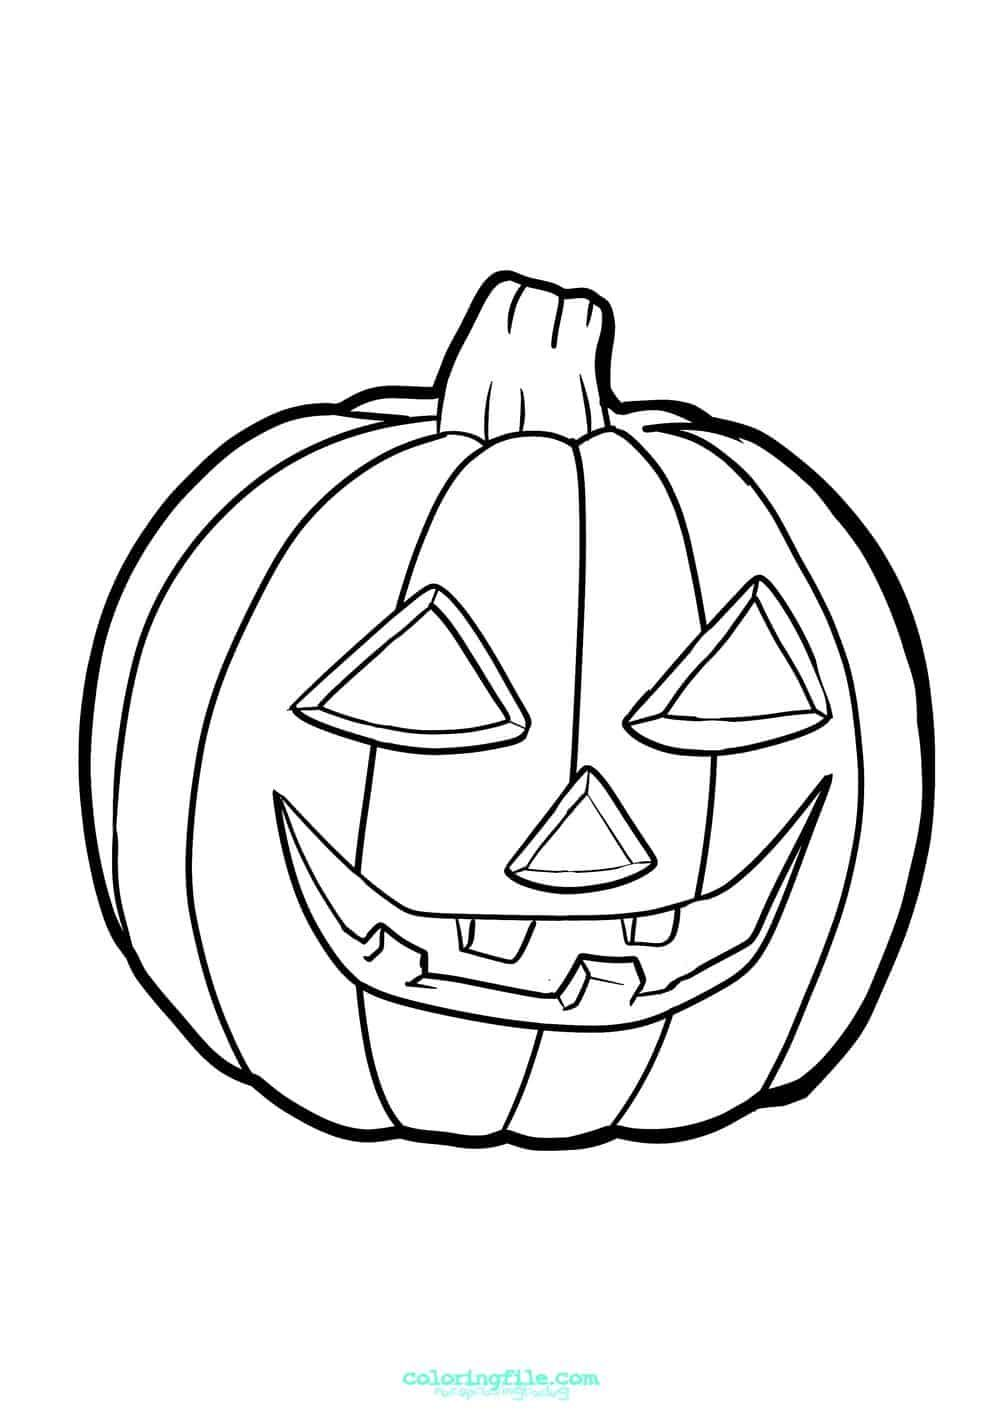 Halloween Jack O Lantern Pumpkin Coloring Pages From 100